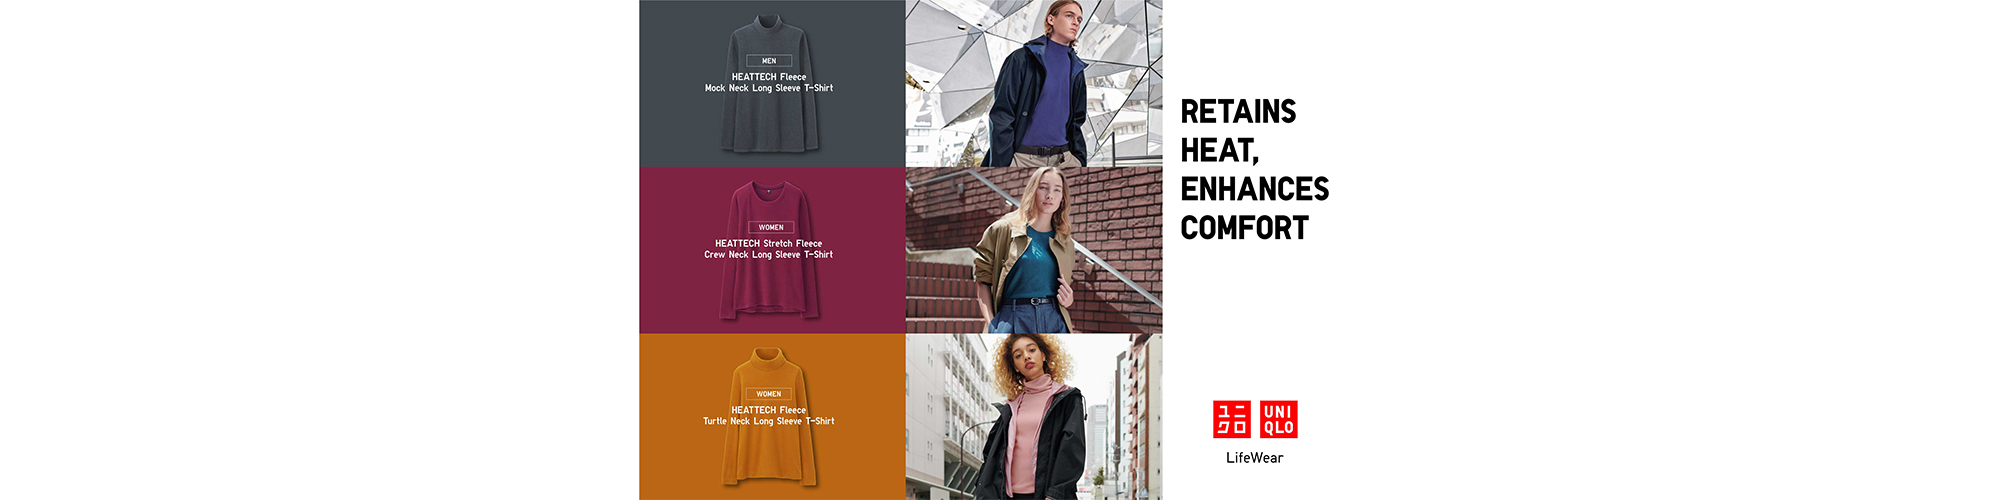 km_website_slider_uniqlo_081118